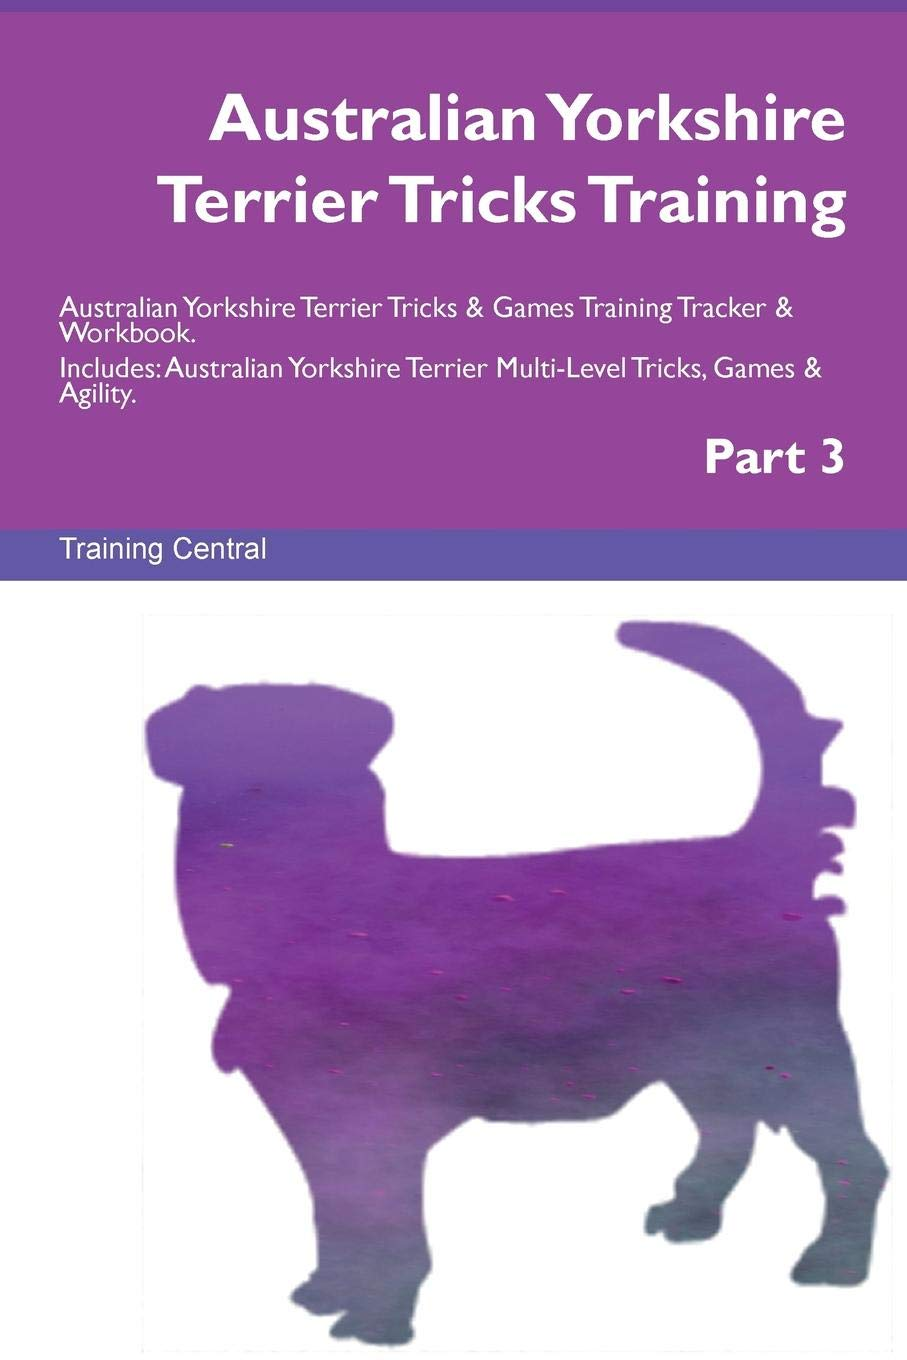 Australian Yorkshire Terrier Tricks Training Australian Yorkshire Terrier Tricks & Games Training Tracker & Workbook…